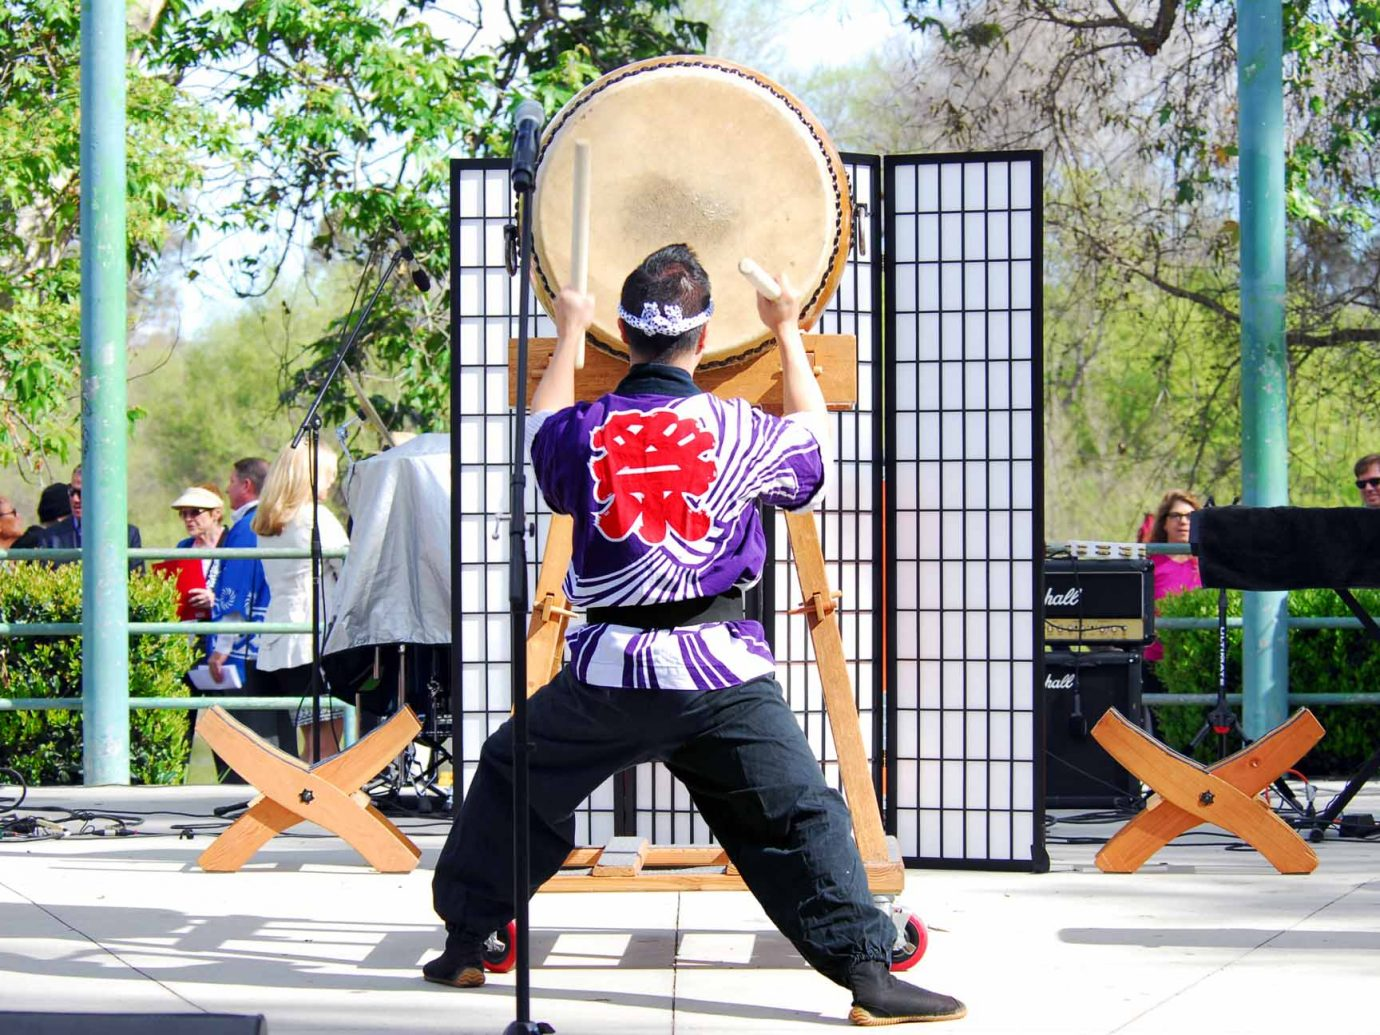 Performer at Orange County Cherry Blossom Festival